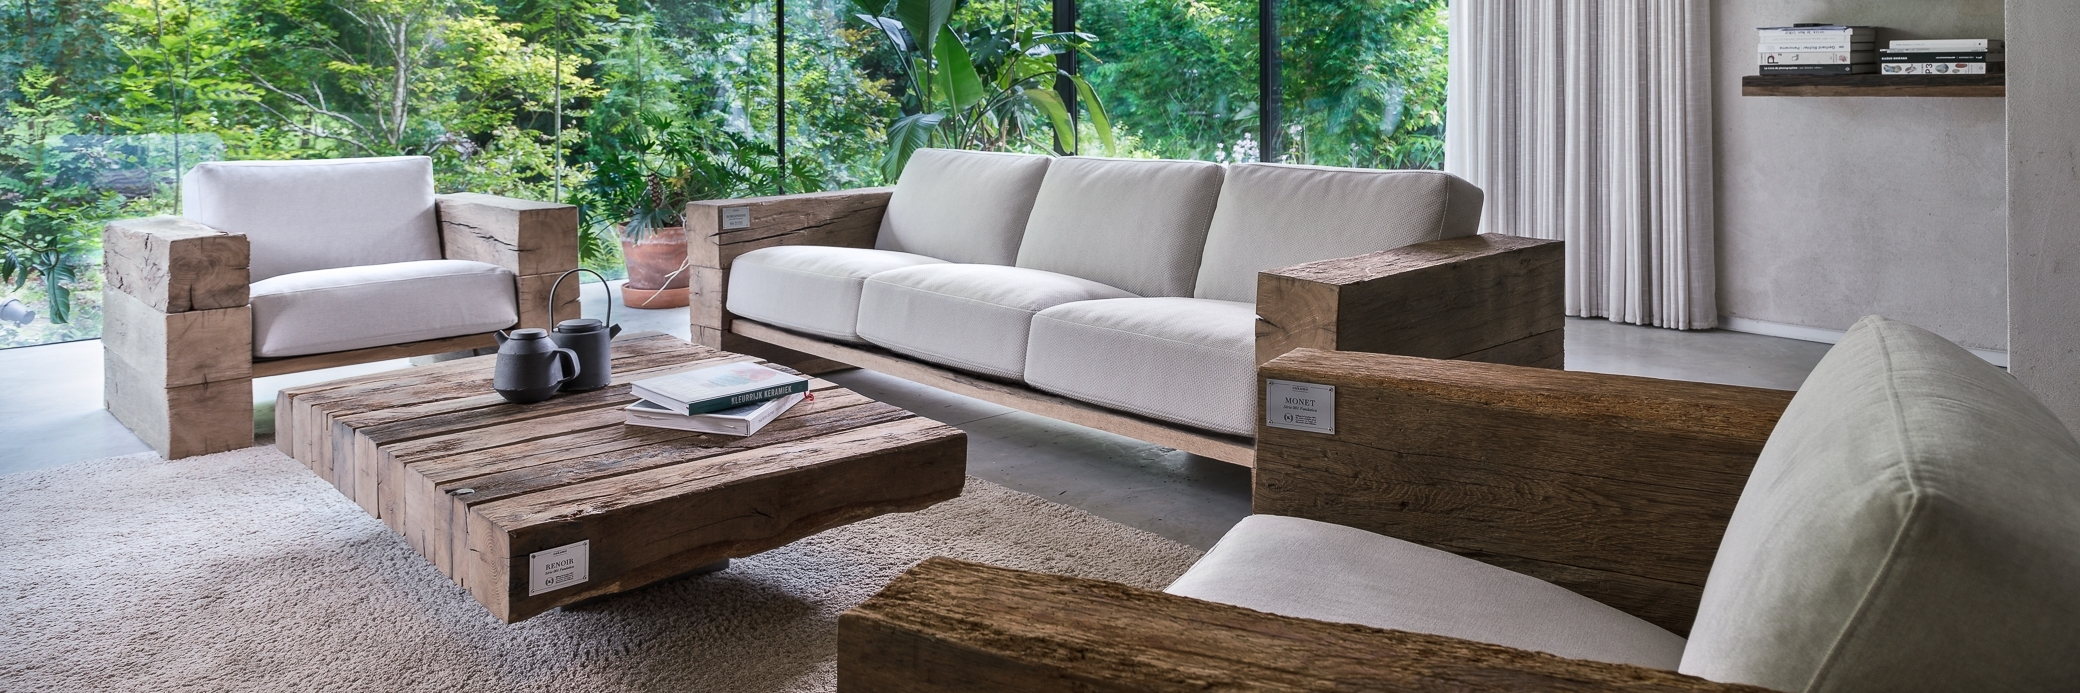 Rustic Indoor Wooden Sofas | Sustainable - Made in France | Oakâme